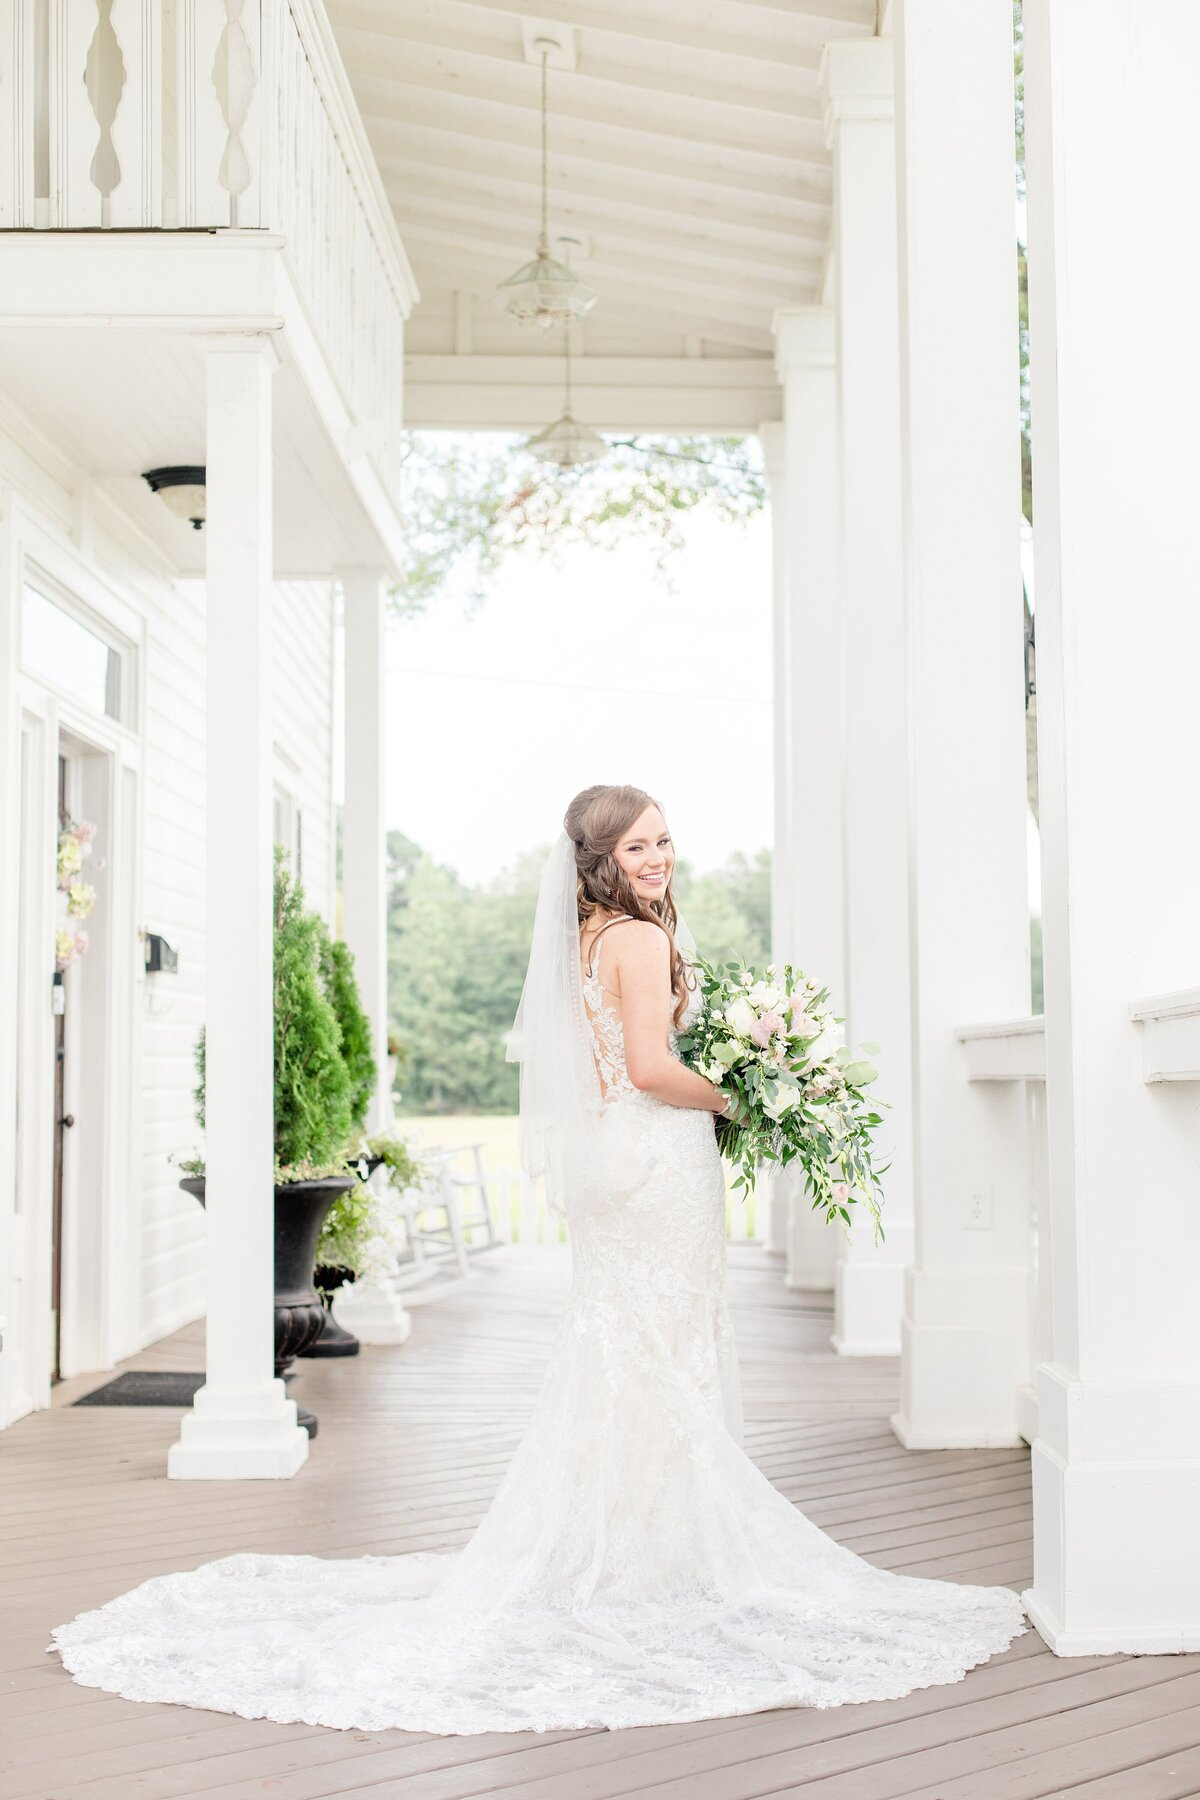 Wedding Gallery - A&J Birmingham, Alabama Wedding & Engagement Photographers - Katie & Alec Photography 61